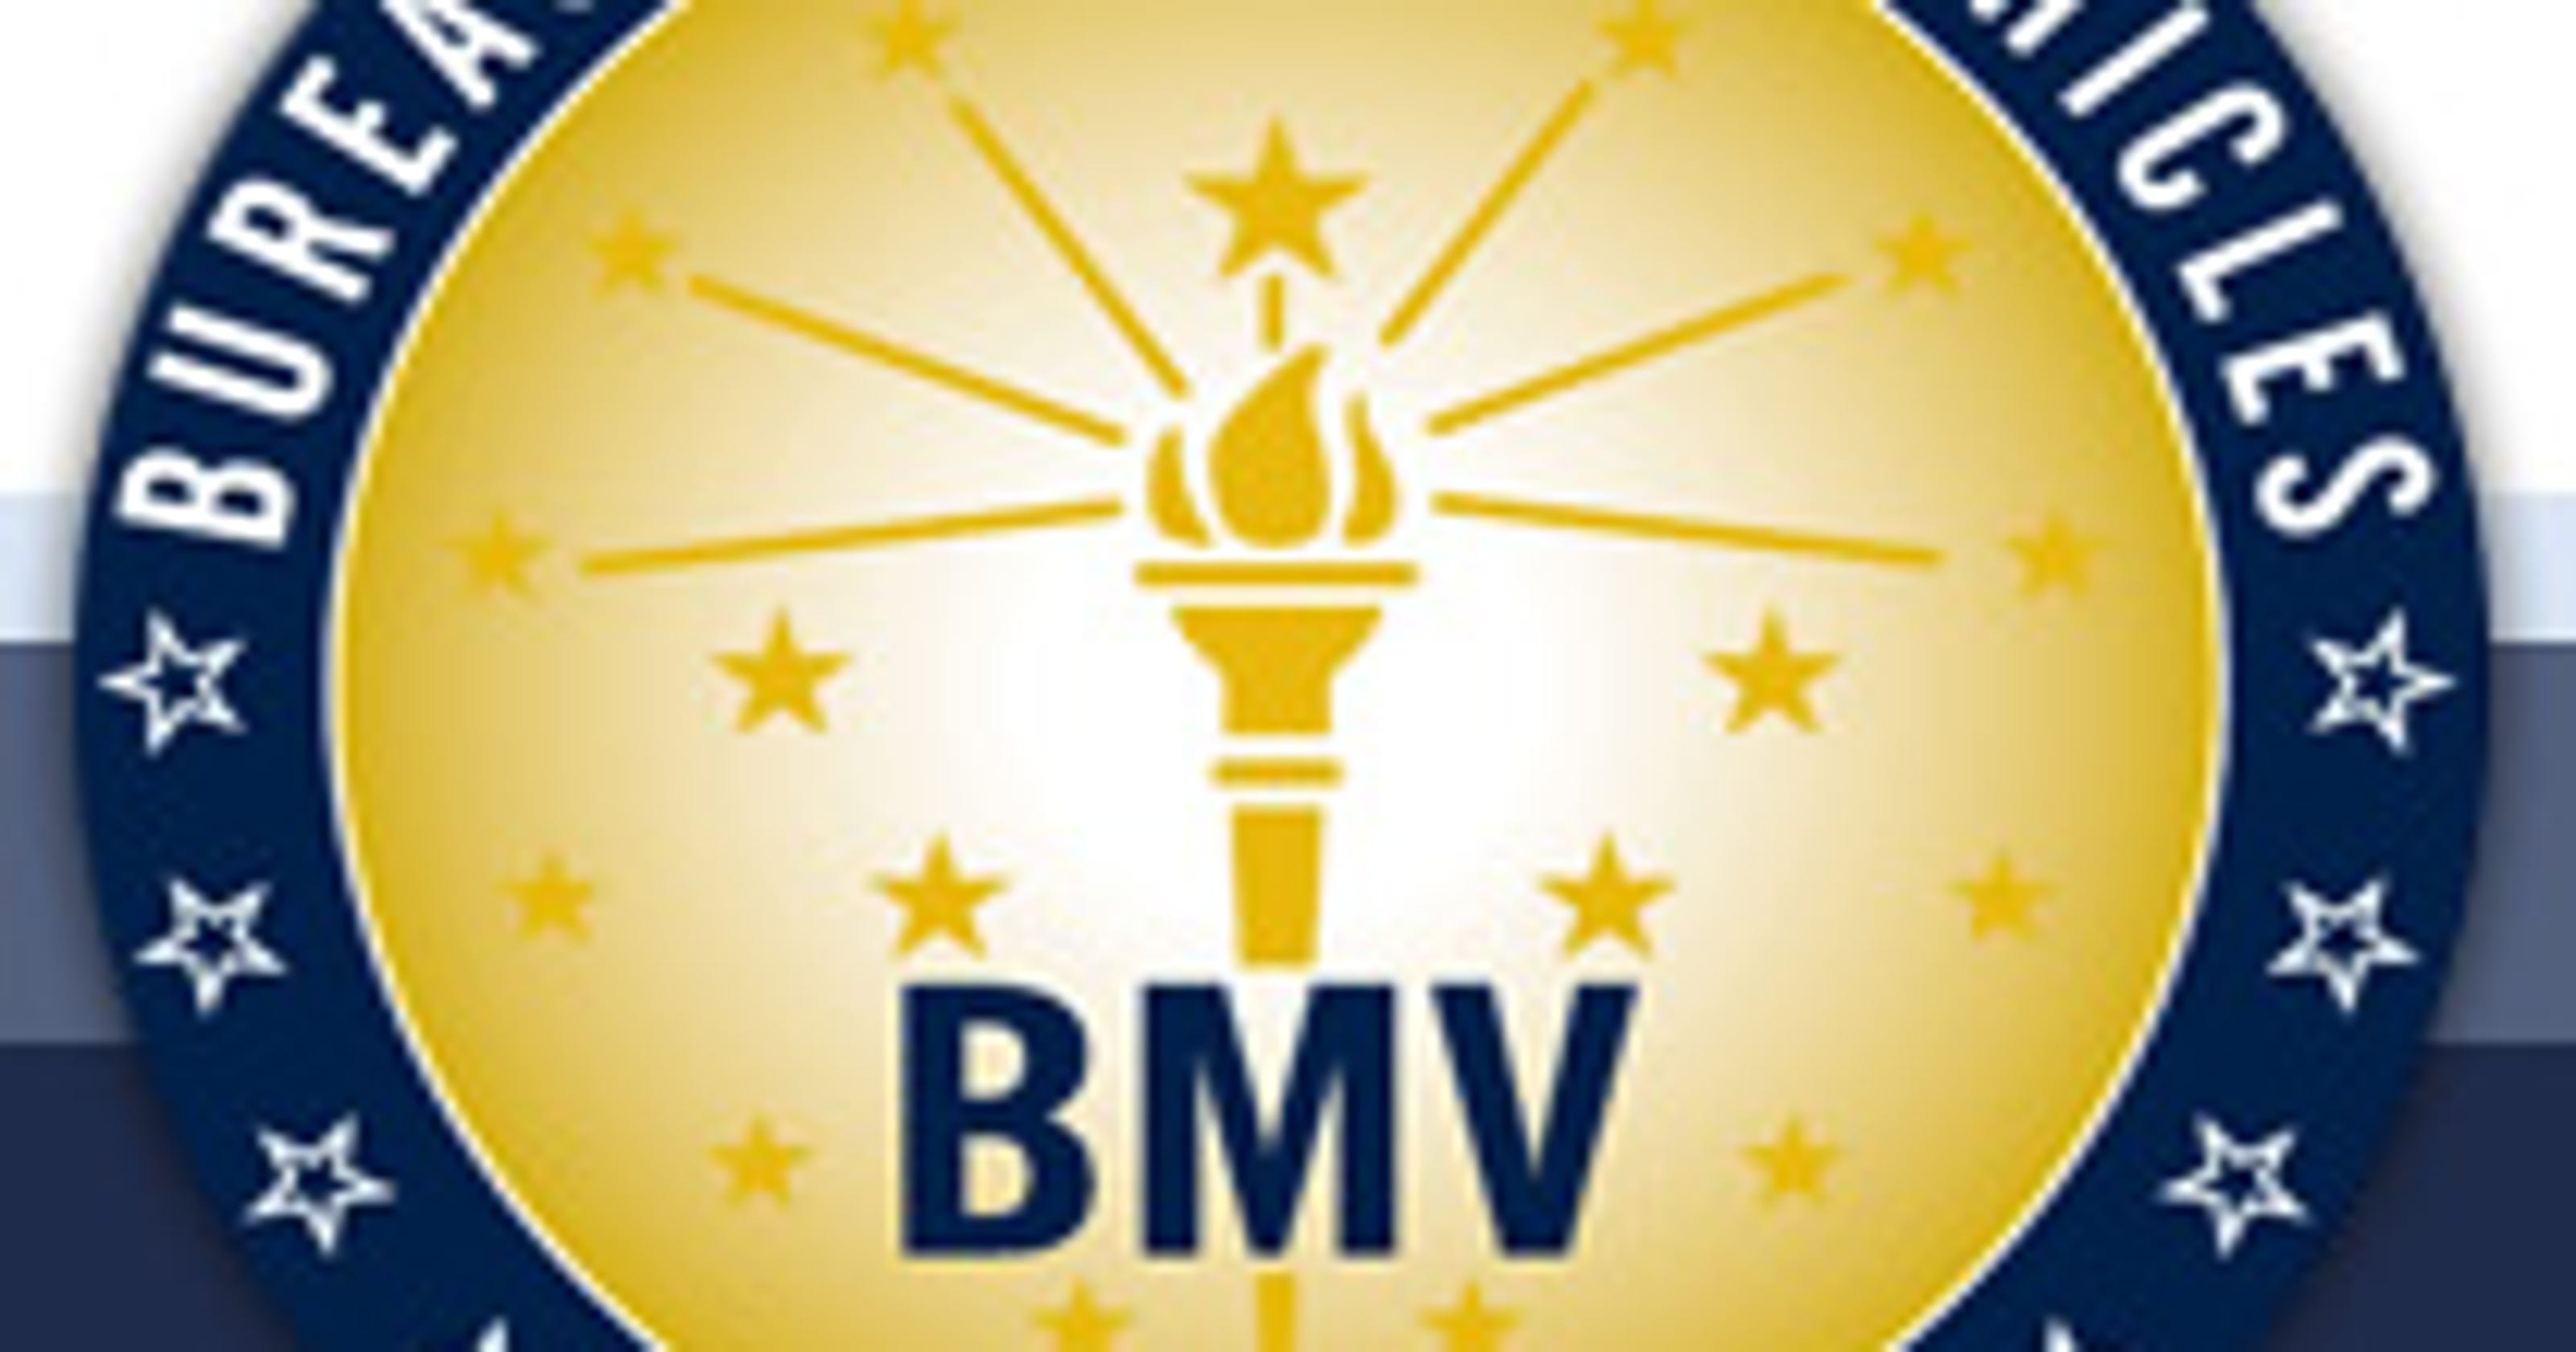 Indiana BMV offering reinstatement fee discount for